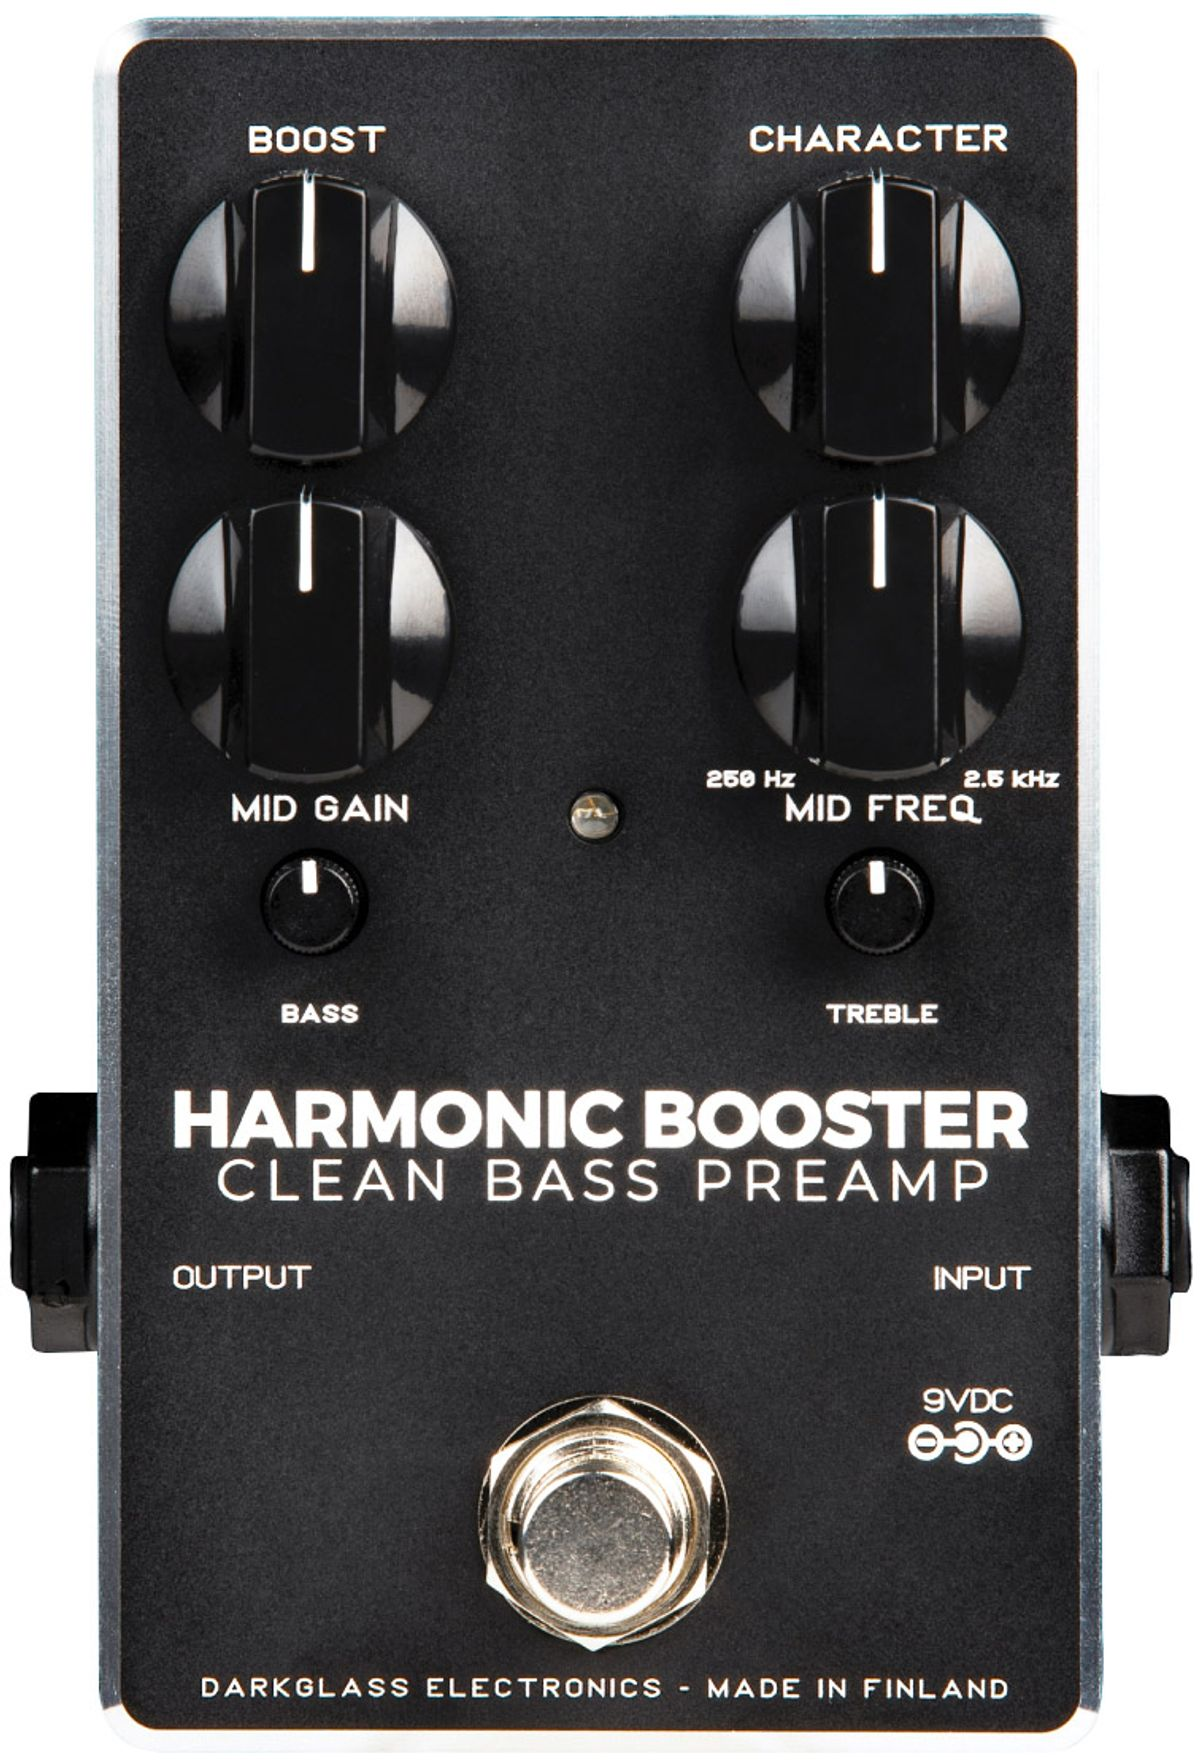 Darkglass Electronics Harmonic Booster: The Premier Guitar Review